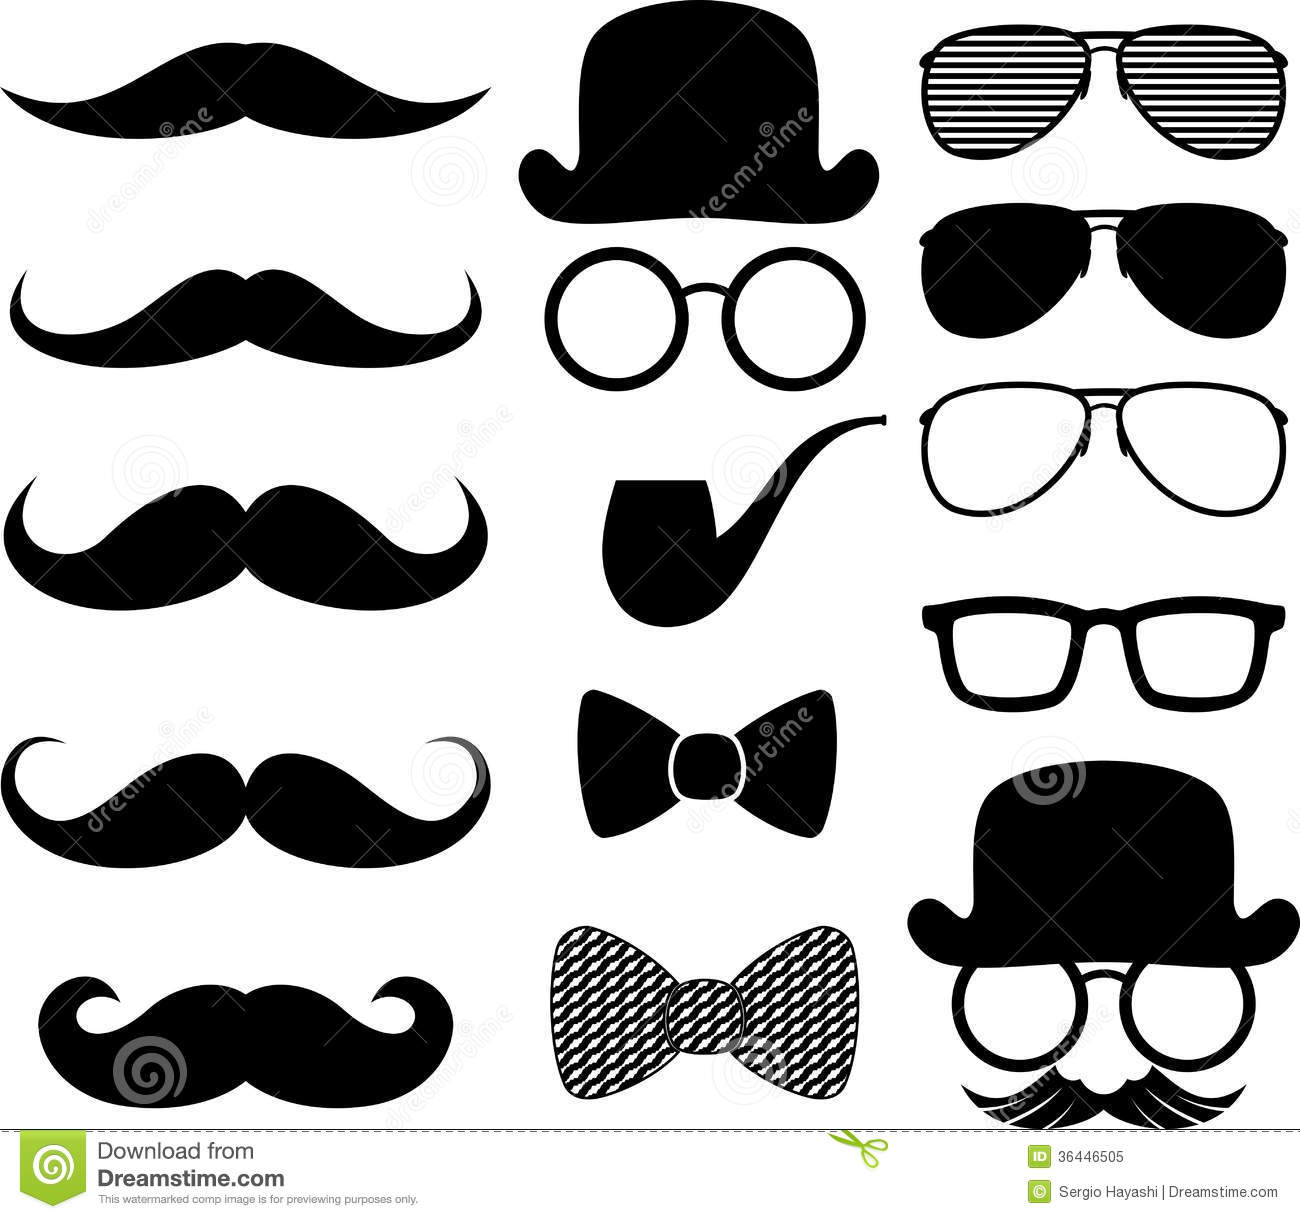 Set of black moustaches silhouettes and design elements isolated on ...